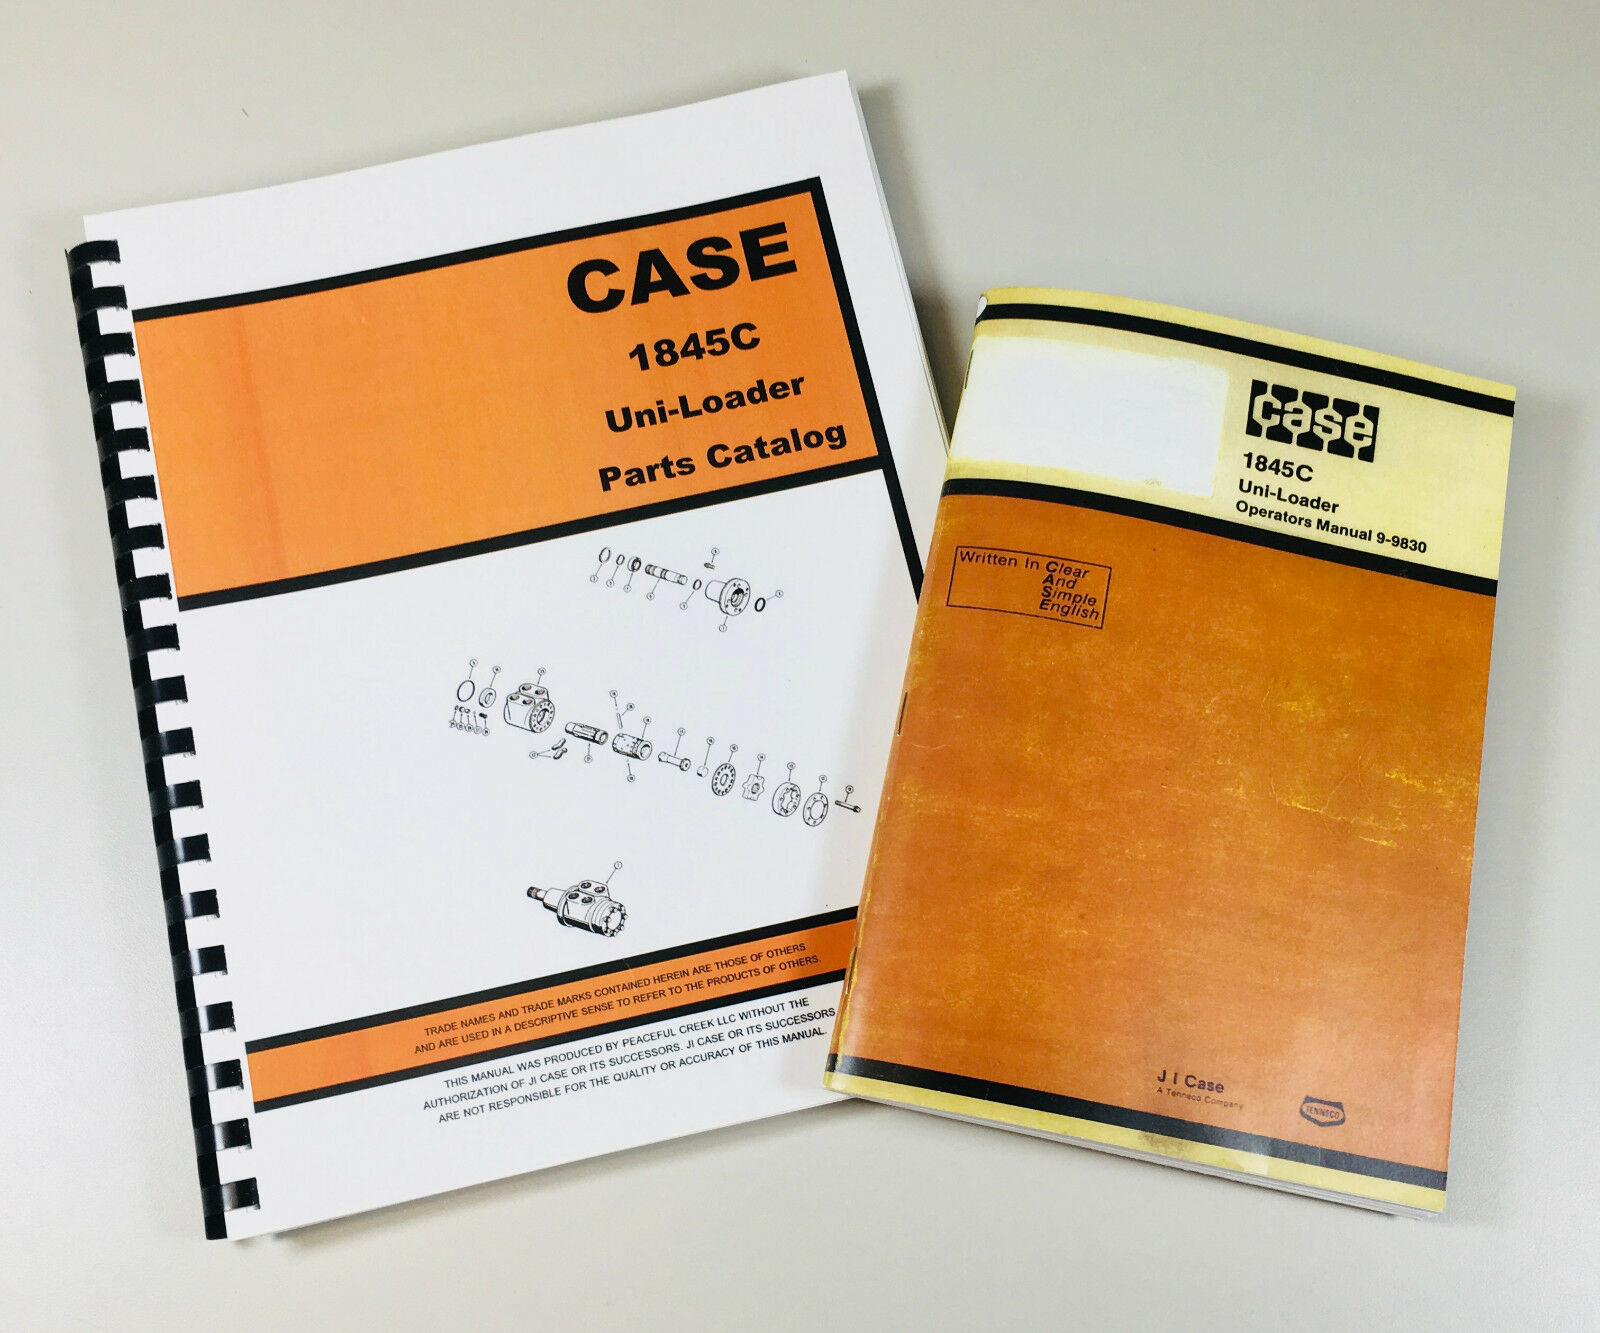 J I Case 1845c Uni Loader Parts And Operators Manual Catalog Skid Case 1840  Parts Diagram Case 1845c Parts Diagram